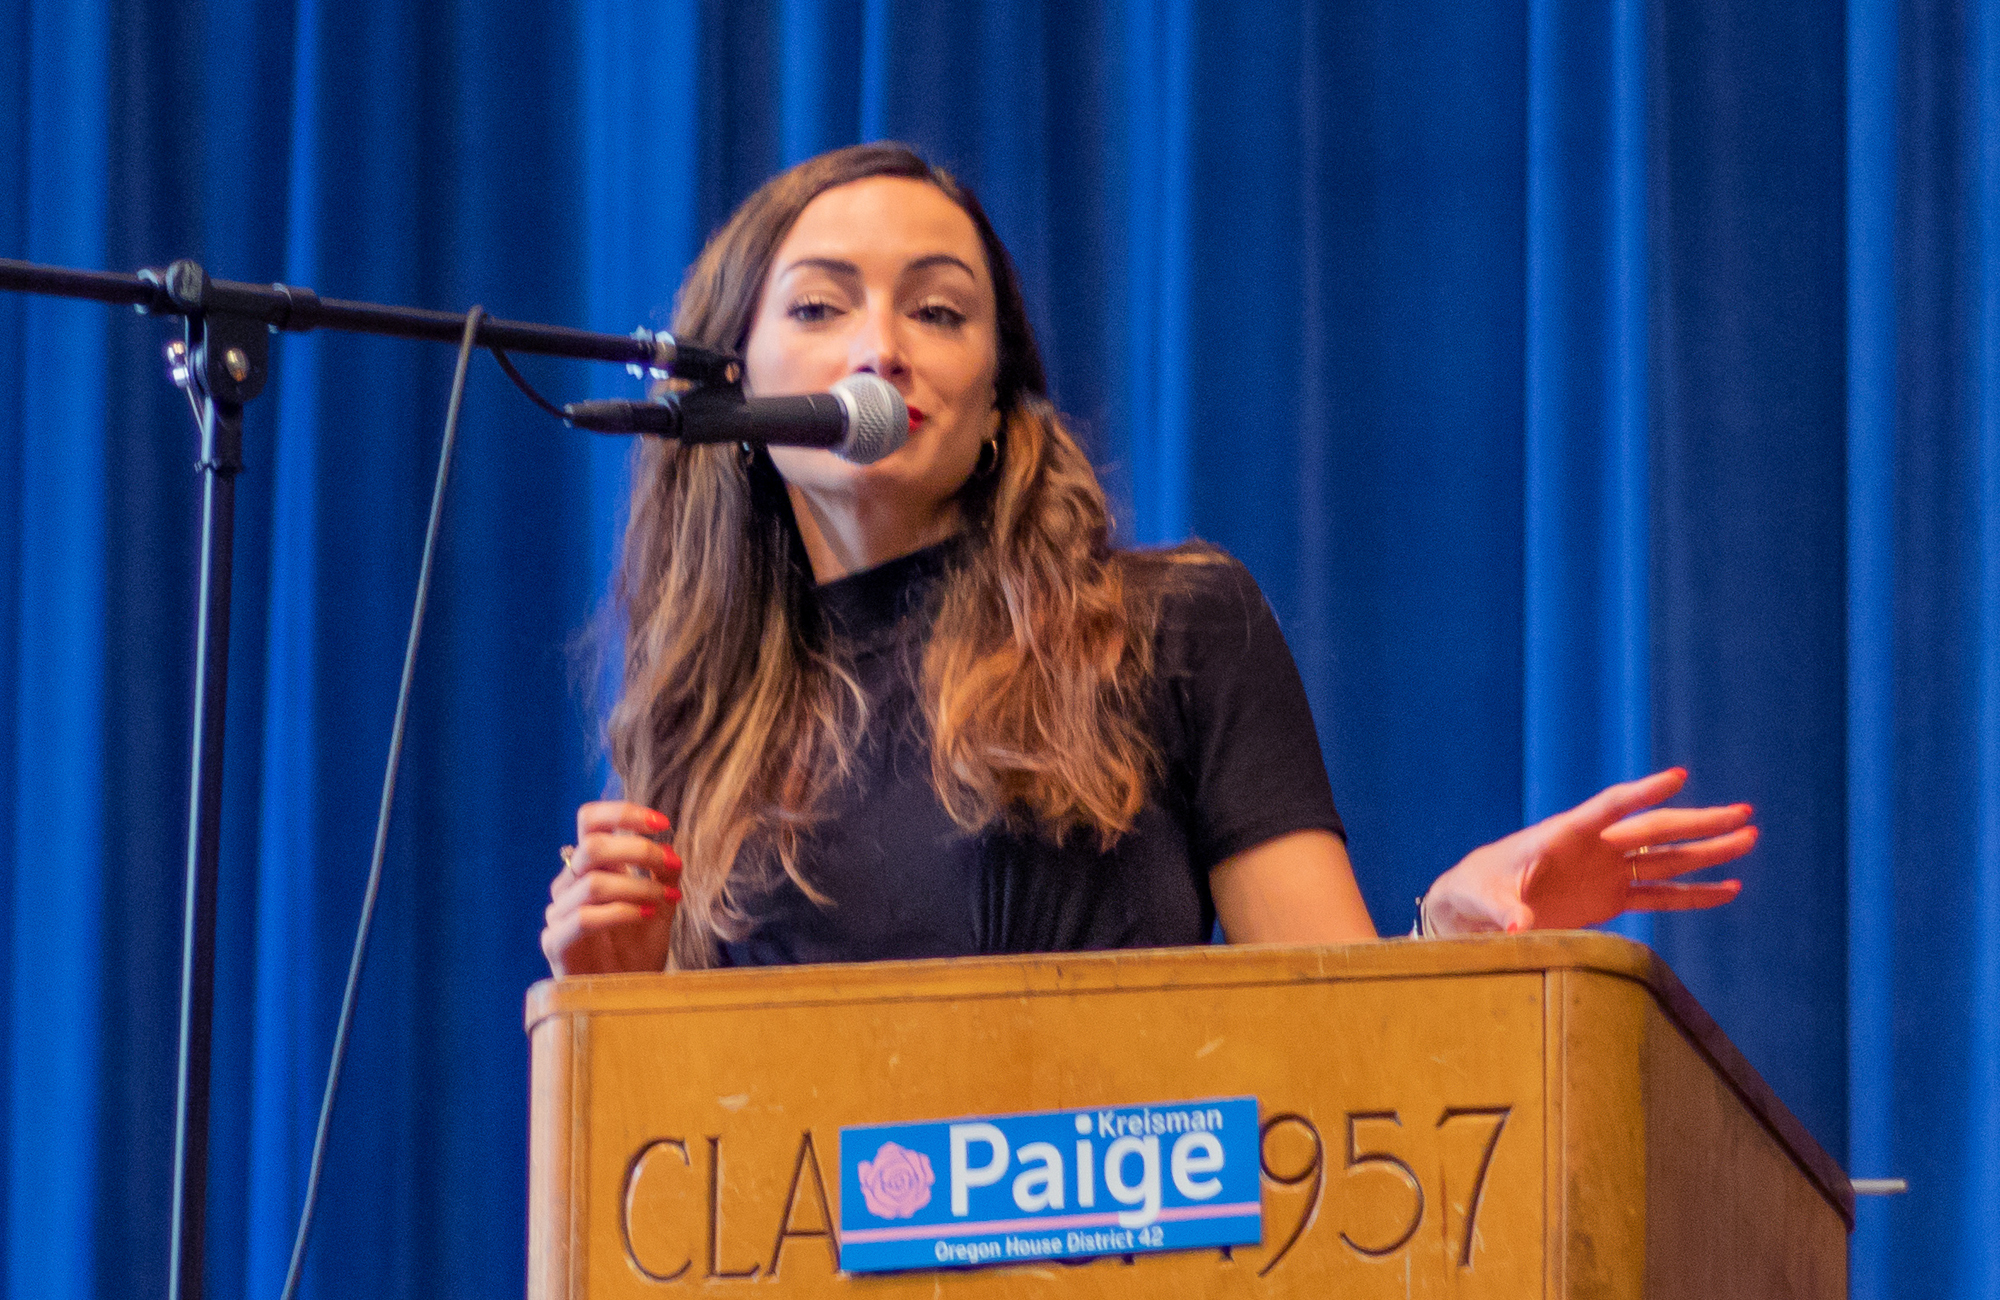 Olivia Katbi Smith, Co-Chair of the Portland Democratic Socialists of America, speaks in support of Paige Kreisman at Paige's campaign kick off rally. (June 23rd 2019) - Hosford Middle School.